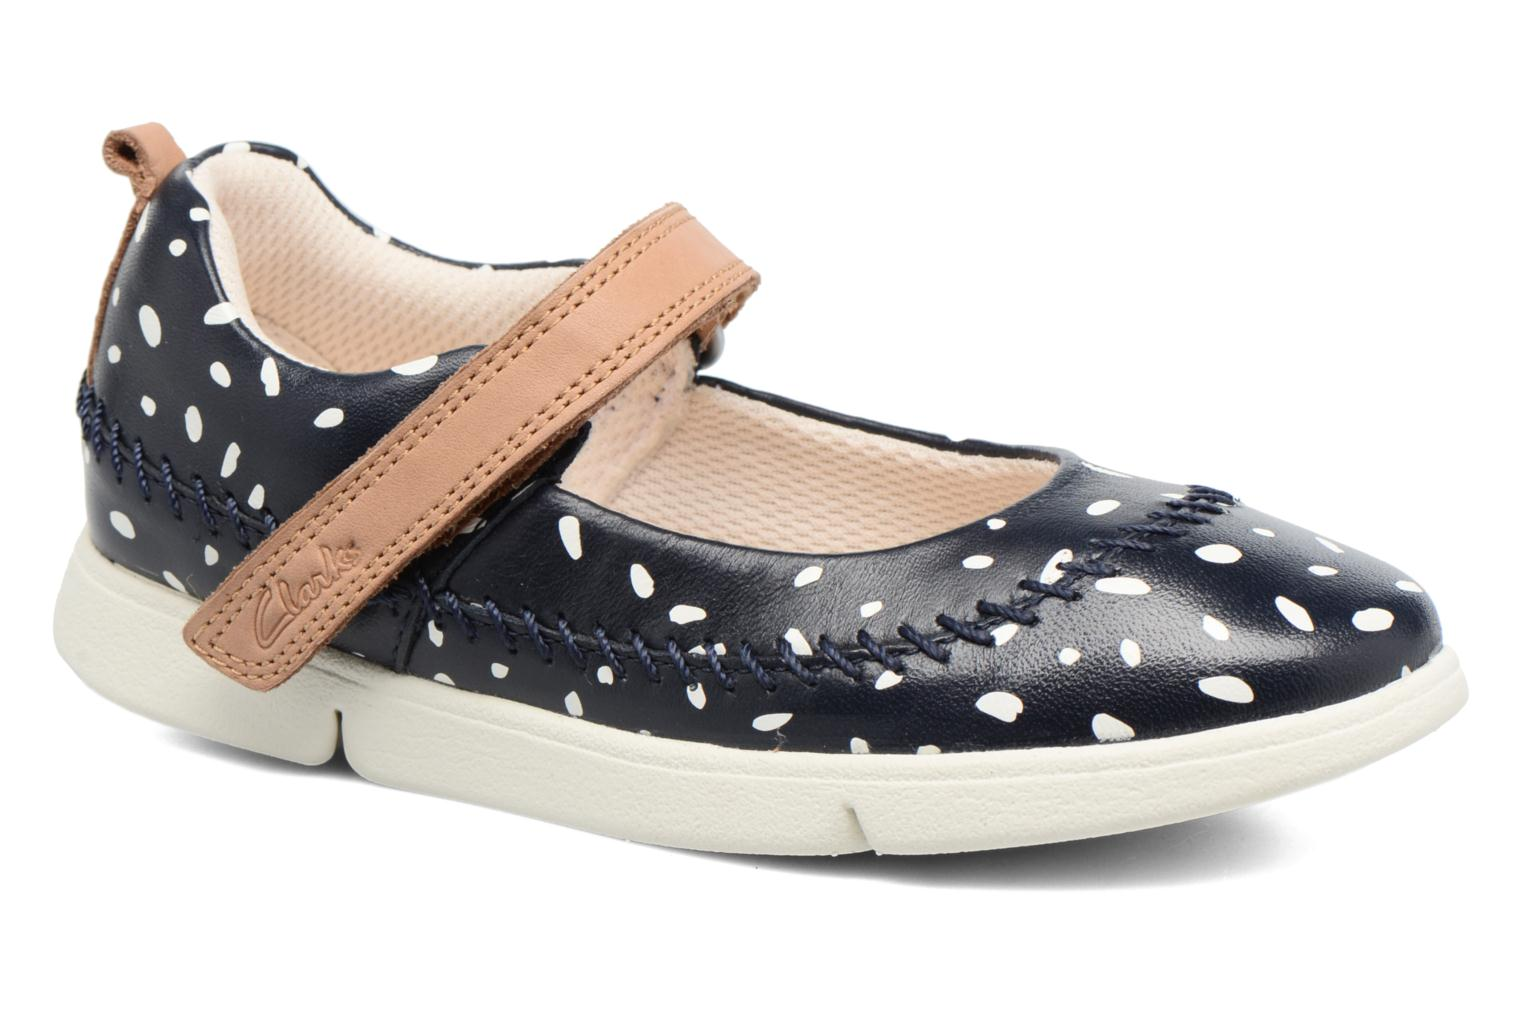 Inf Navy Clarks Molly multi Tri nZX6tw6Ex